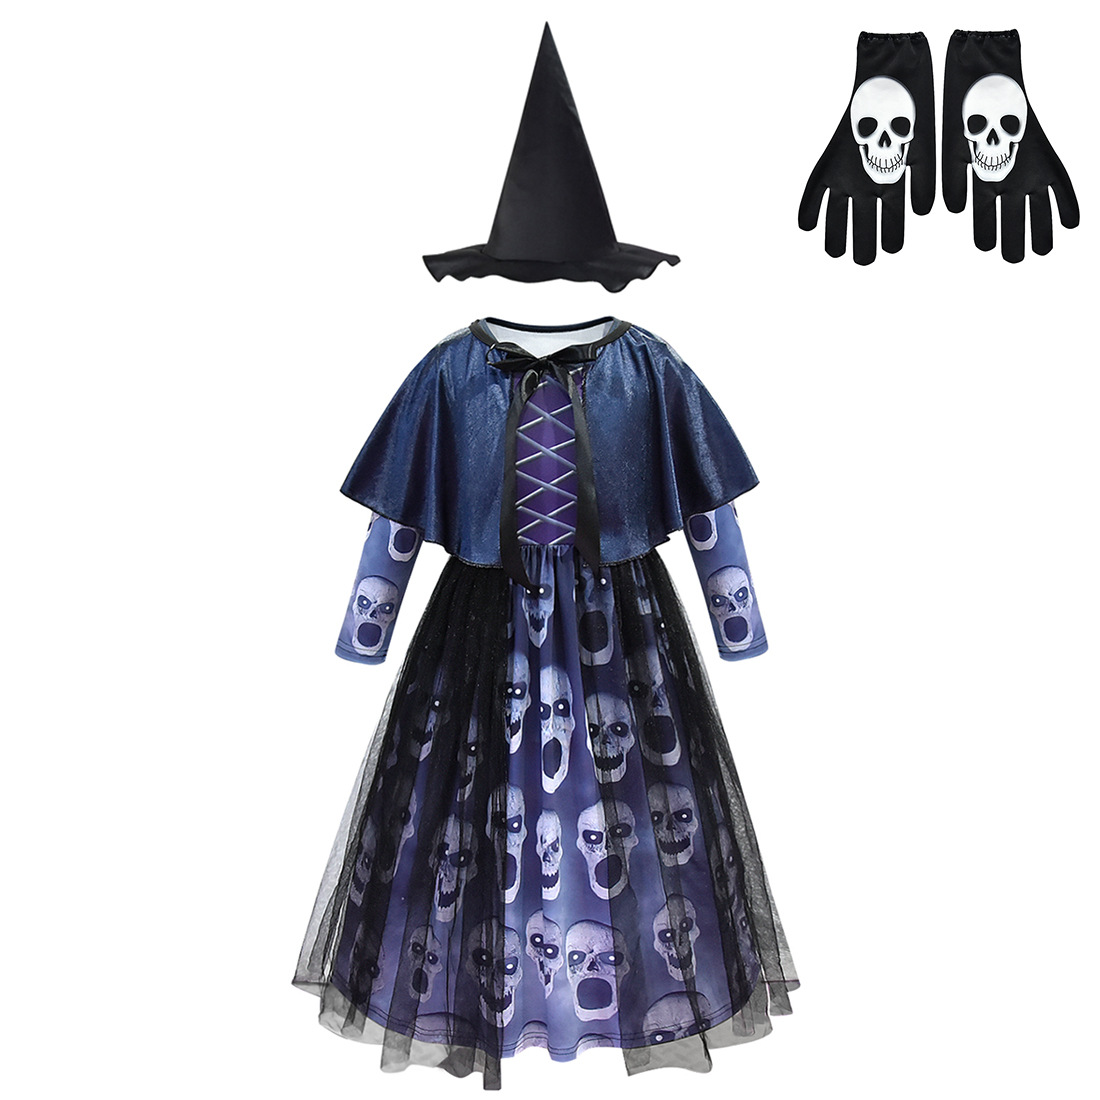 Kids Witch Skull Dress Halloween Costume for Kids Girls Carnival Cosplay Costumes Childrens Witch Devil Elf Vampire Ghost Horror